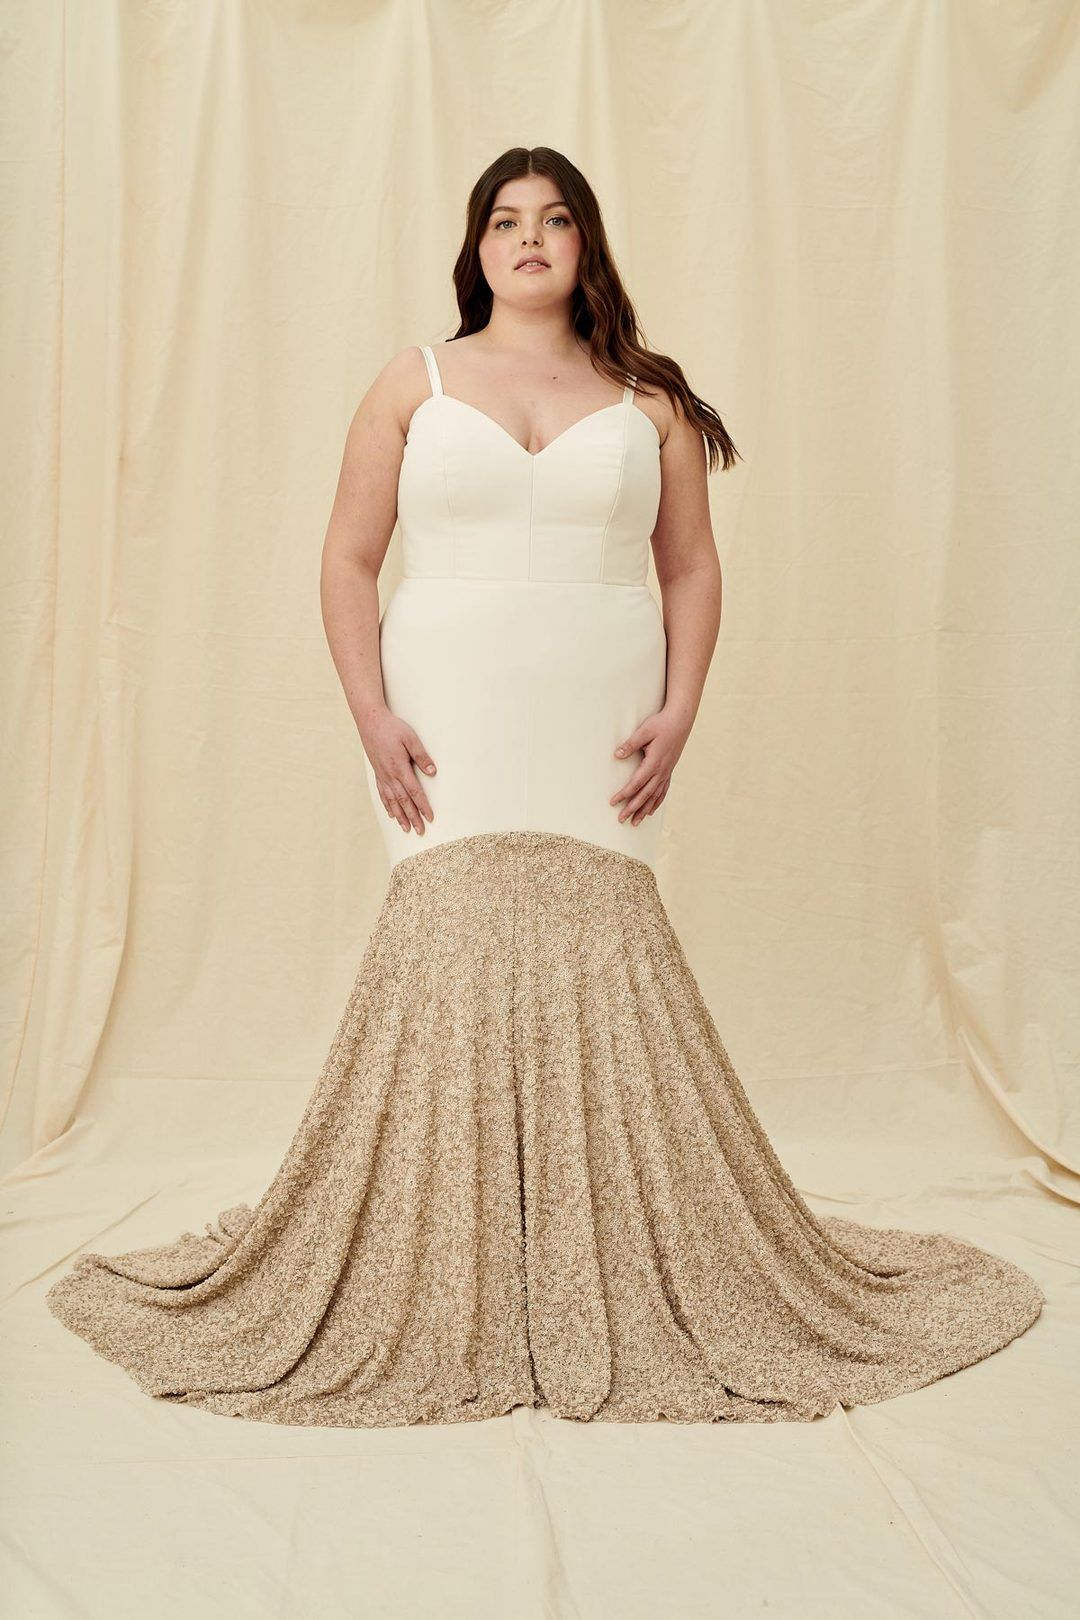 Halseene Paloma Curve A Modern Wedding Dress With Fit And Flare Or Mermaid Silhouette Wedding Dress Shopping Plus Size Wedding Gowns Modern Wedding Dress [ 1620 x 1080 Pixel ]